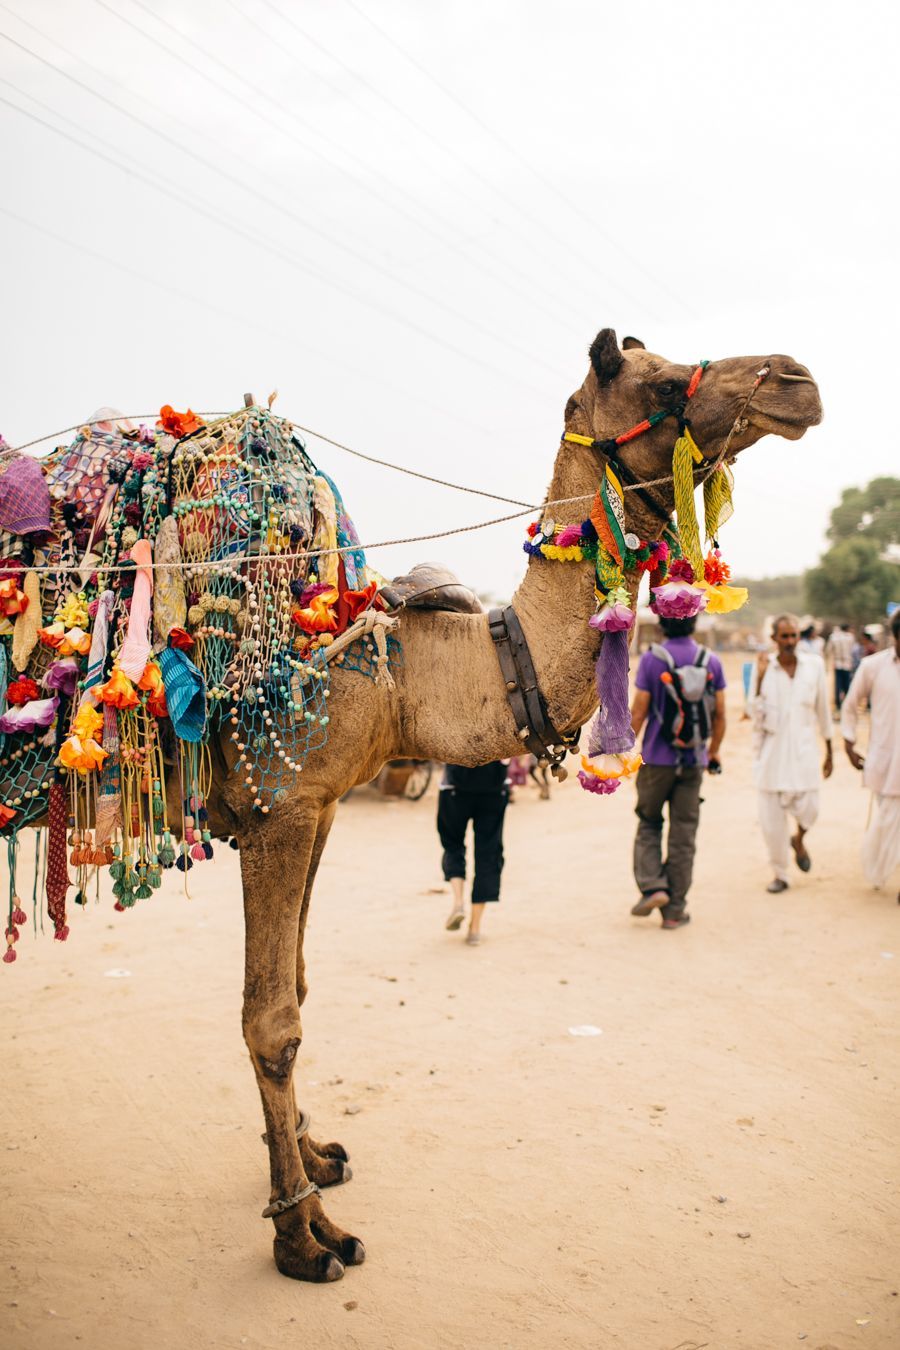 india: photo field trip, jaipur, pushkar camel fair, elephant landing + more… | woodnote photography